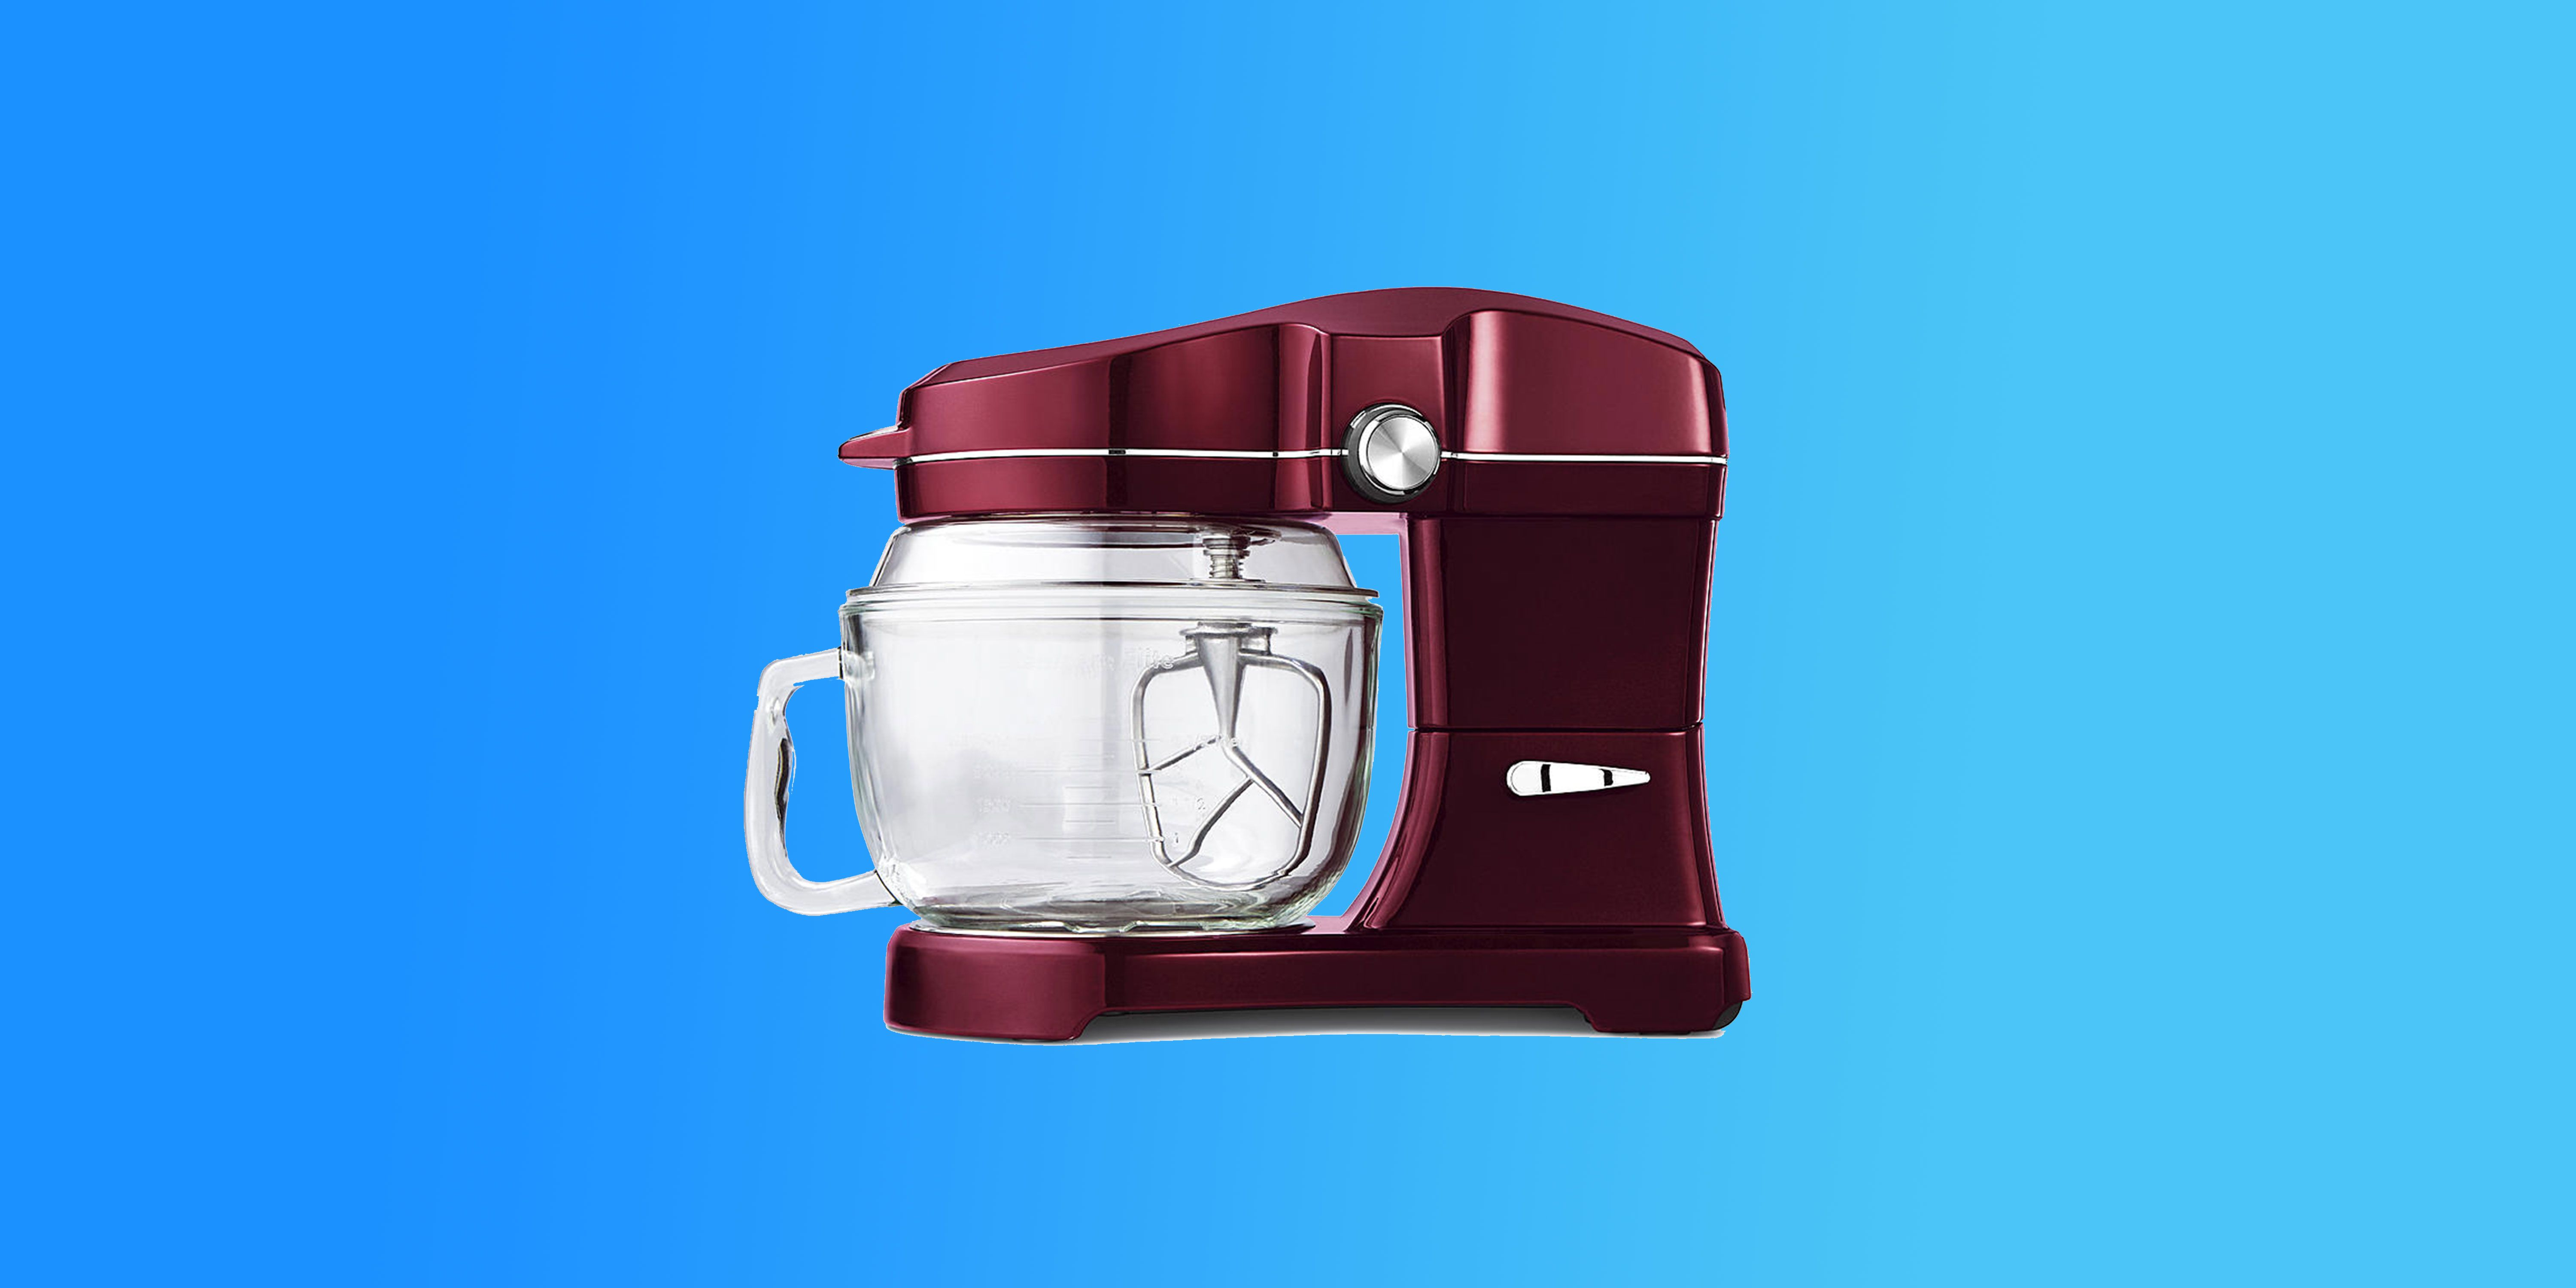 This New Stand Mixer Is Better Than A KitchenAid